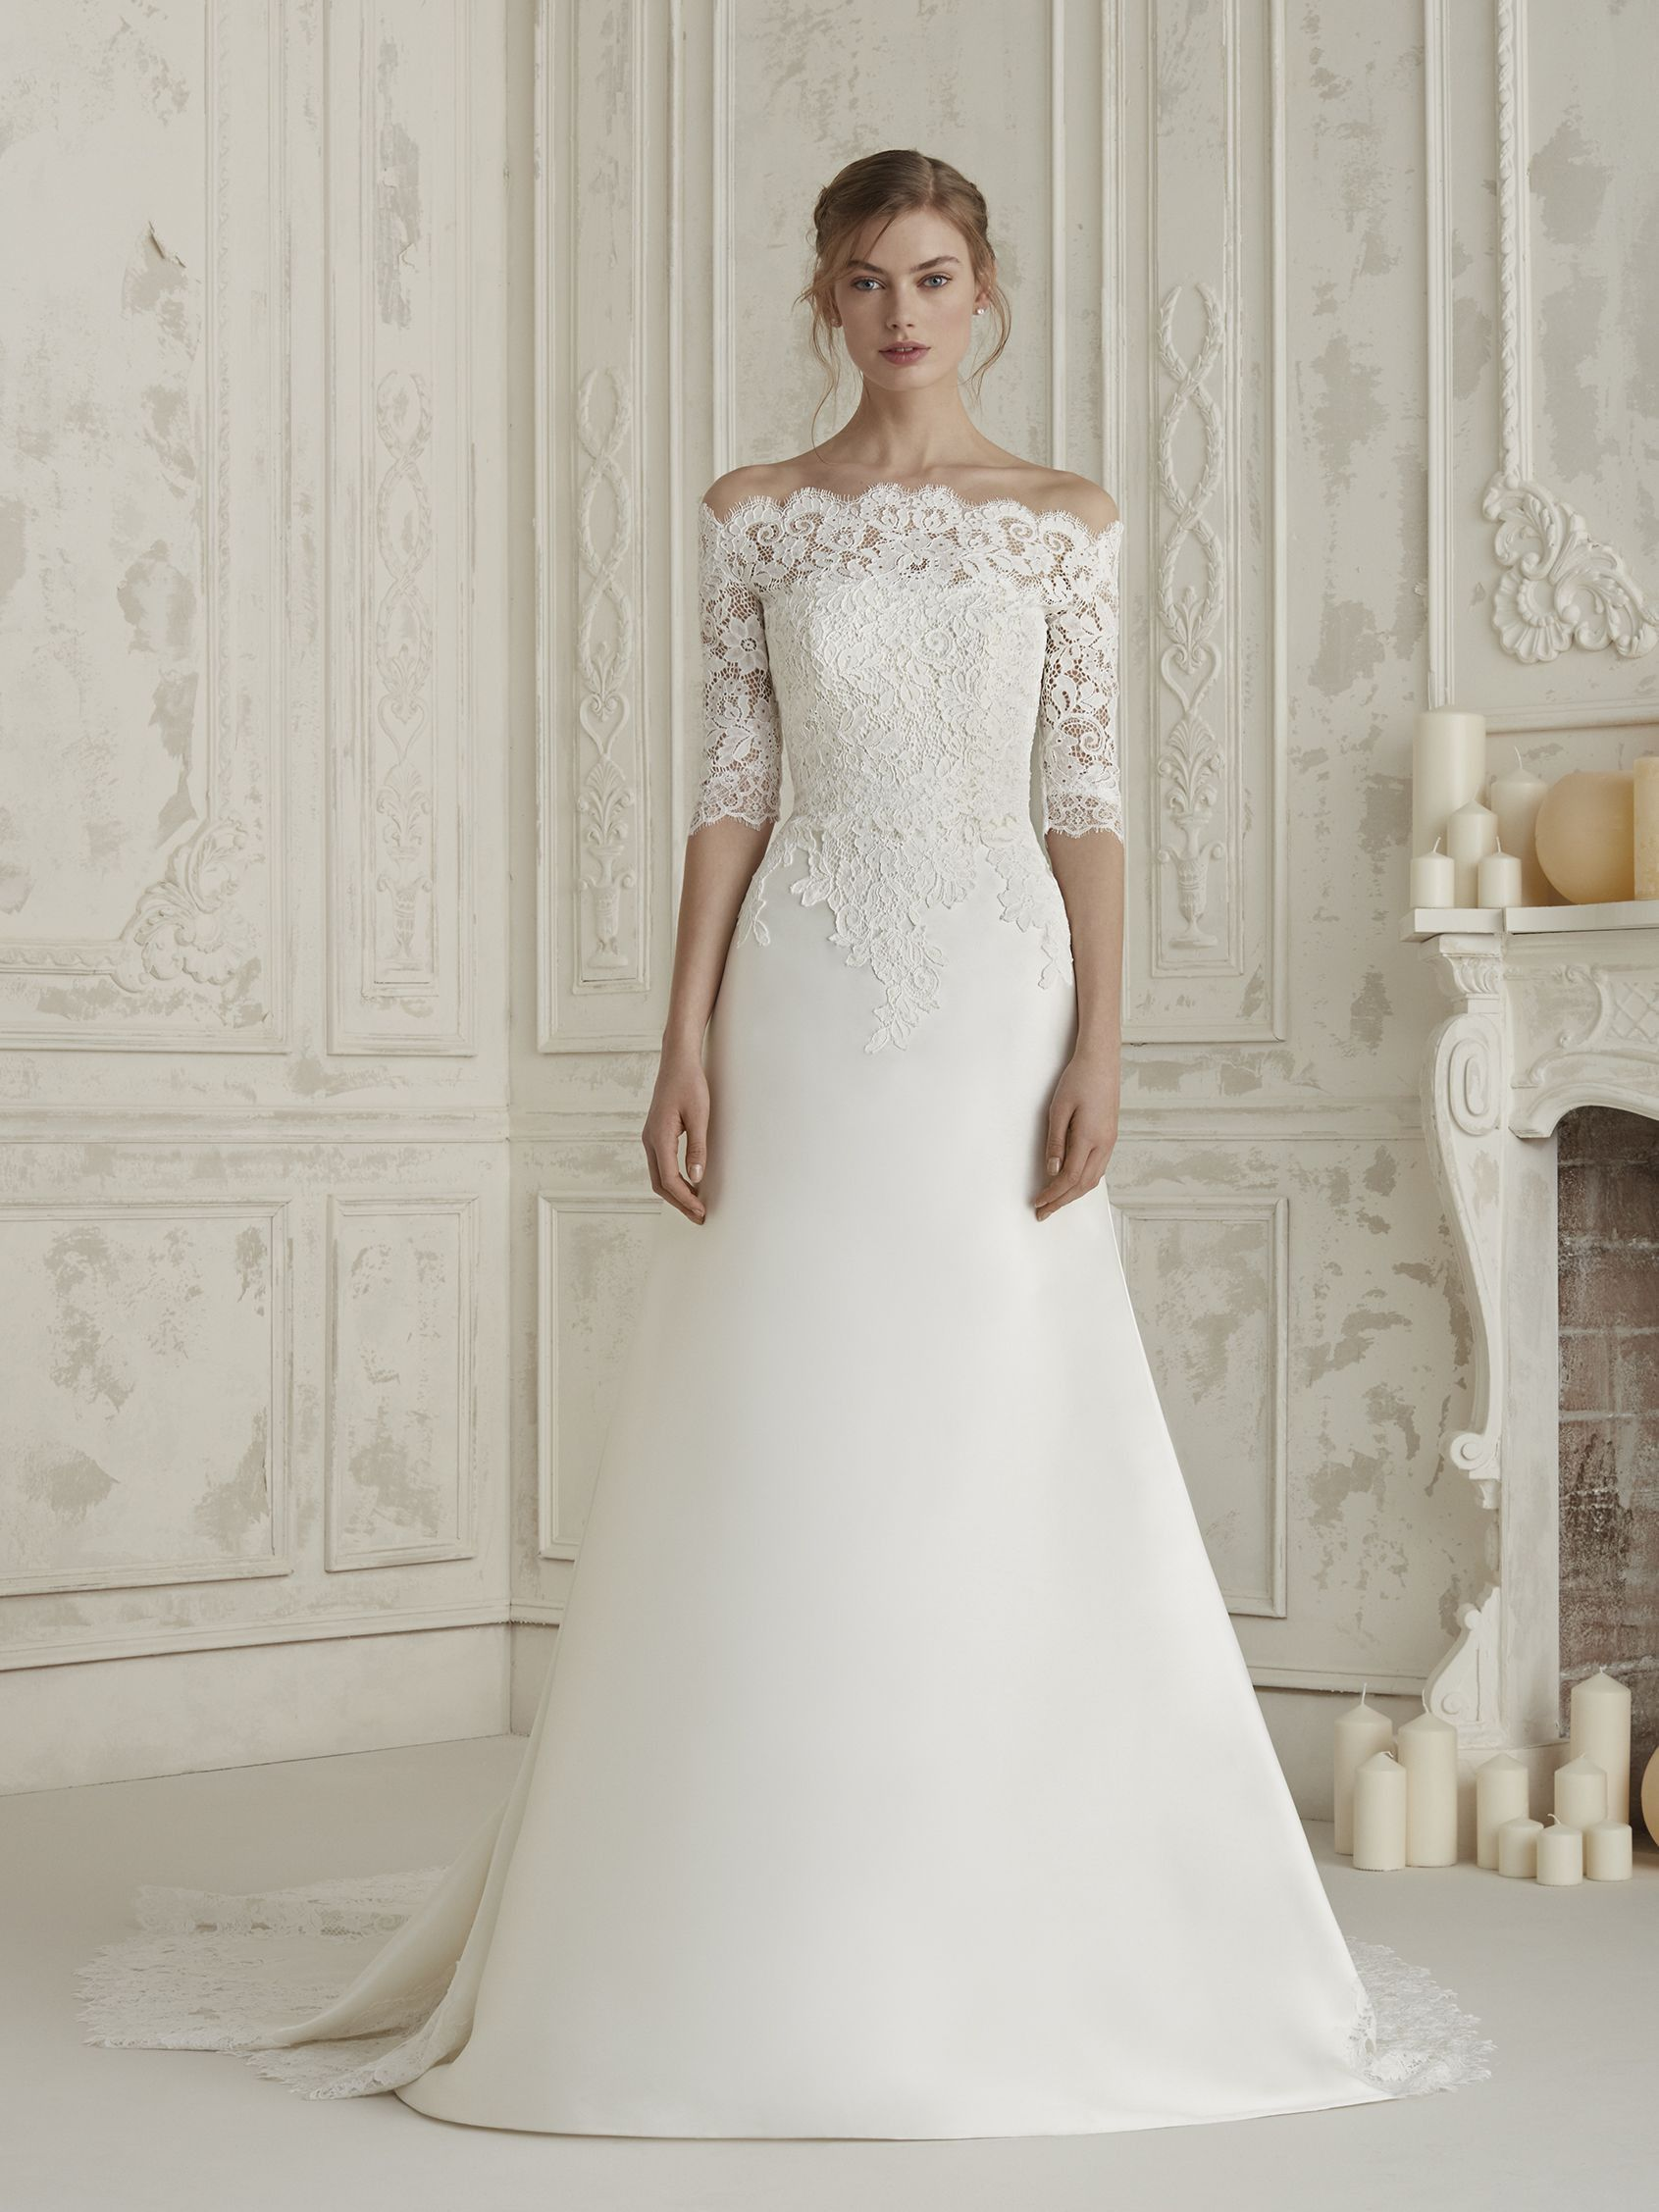 Try On Pronovias Dresses At Elegance By Roya Bridal Boutique